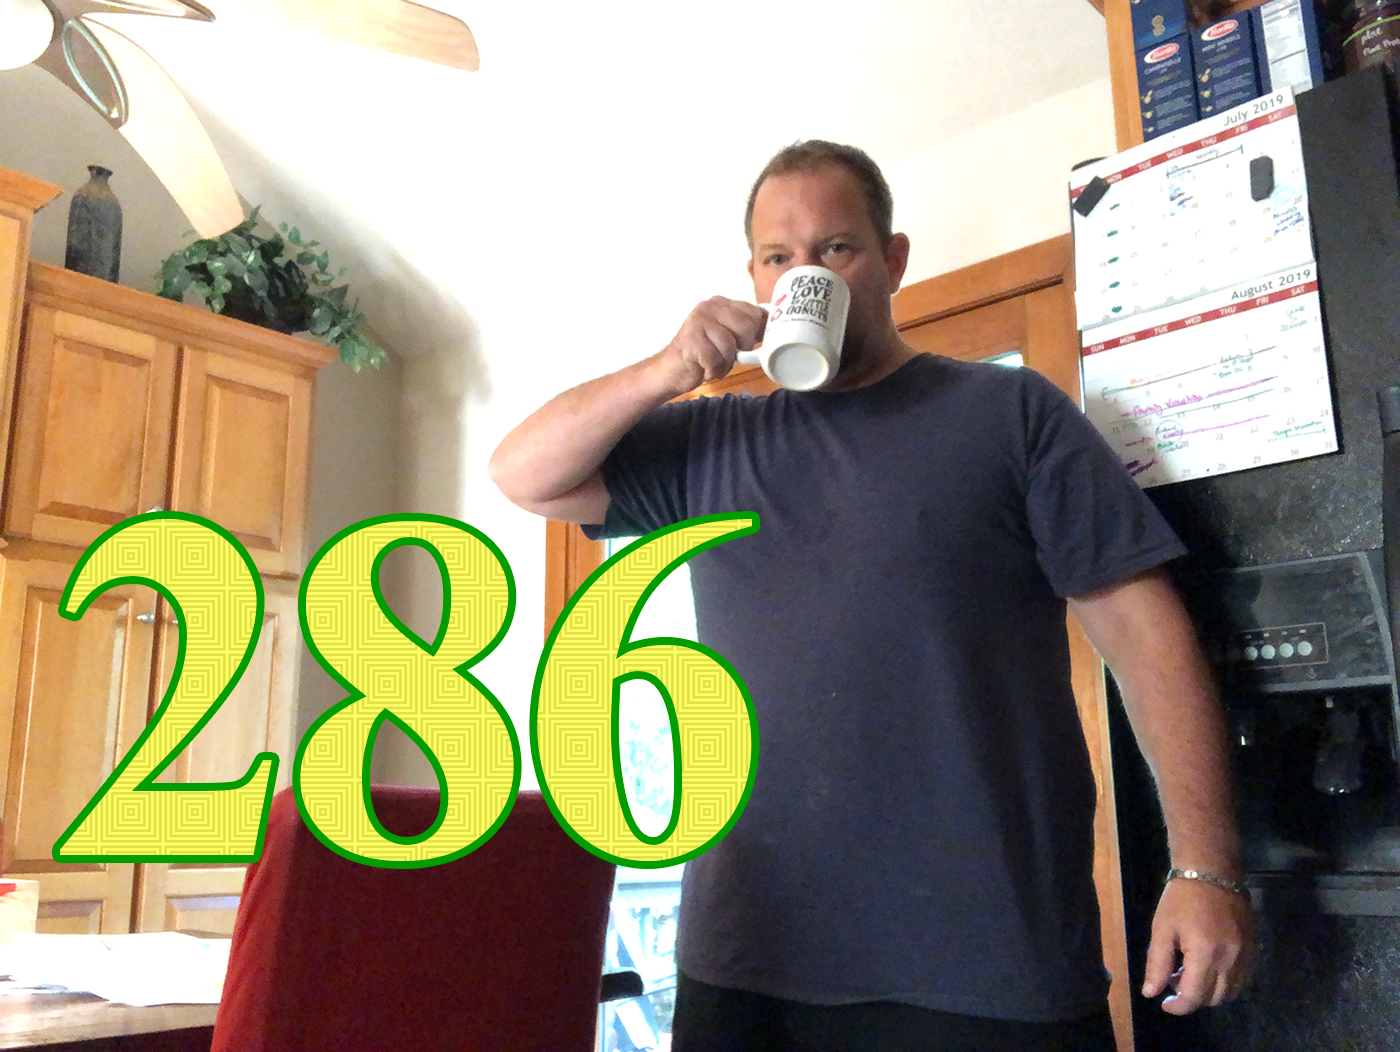 Scratch lost a week, but got back to 286. Let the Fourth of July Box Score serve as as cautionary tale… You can't drink 5,000 calories in beer and hope to lose any weight. Now the question is—where will he go from here?